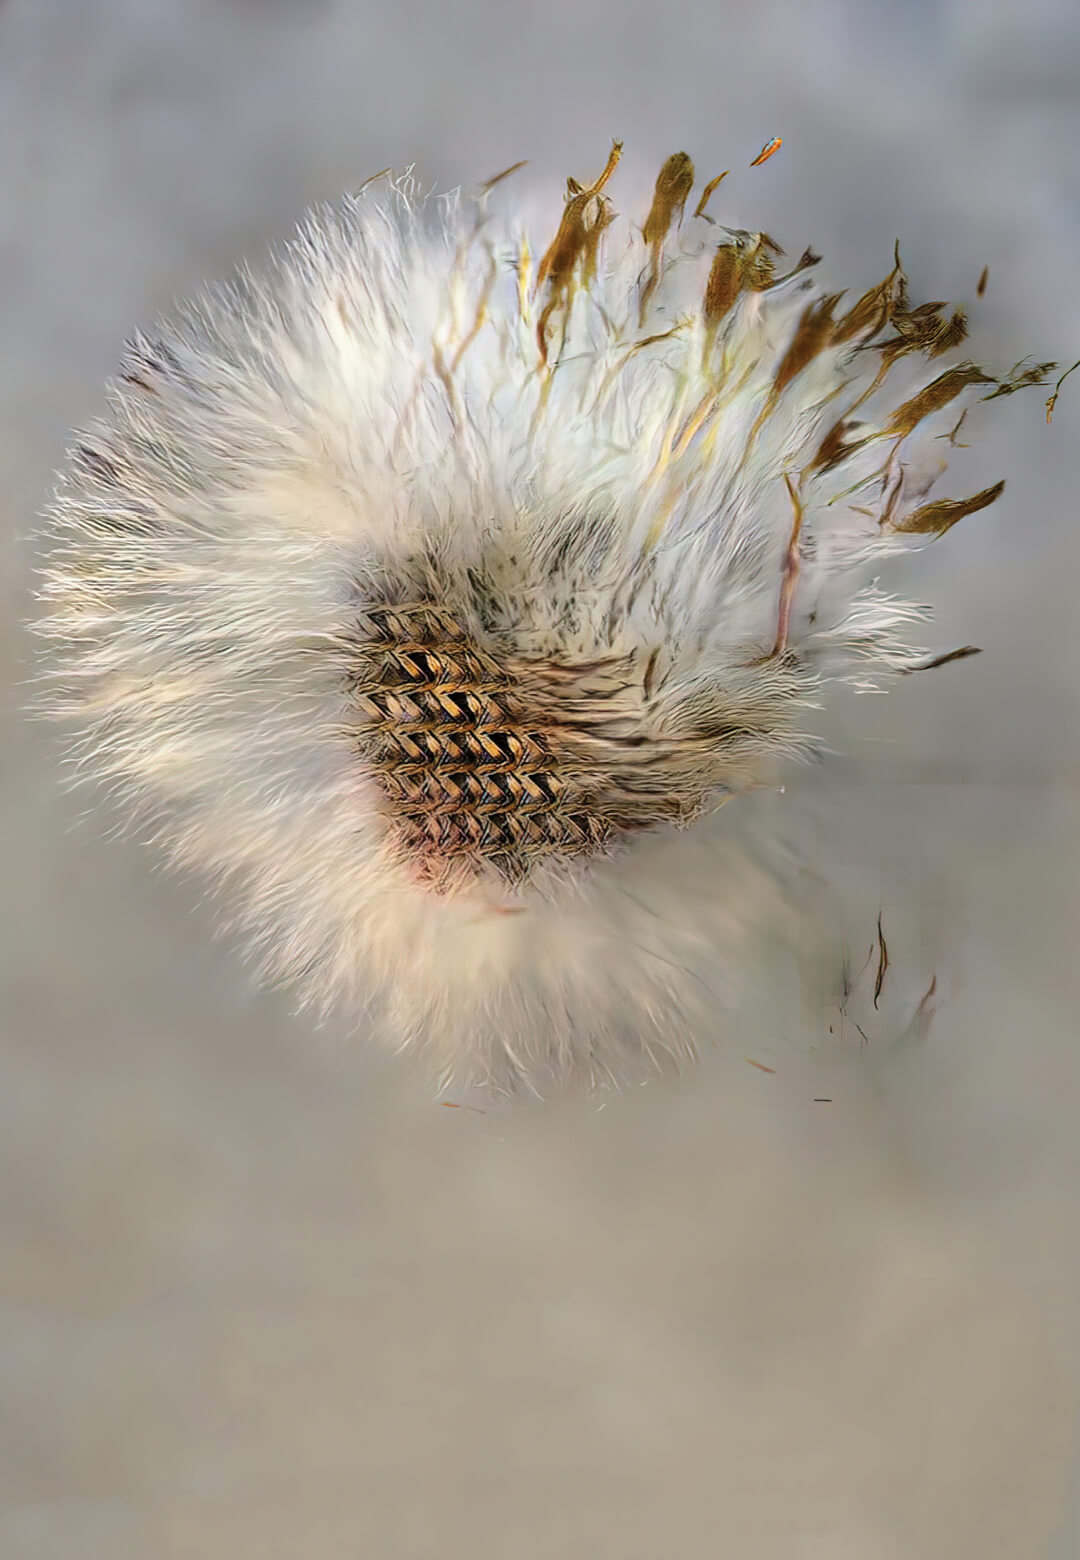 An image created through Young's machine-learning project, after he trained his program on images of dandelions | David Young | STIRworld